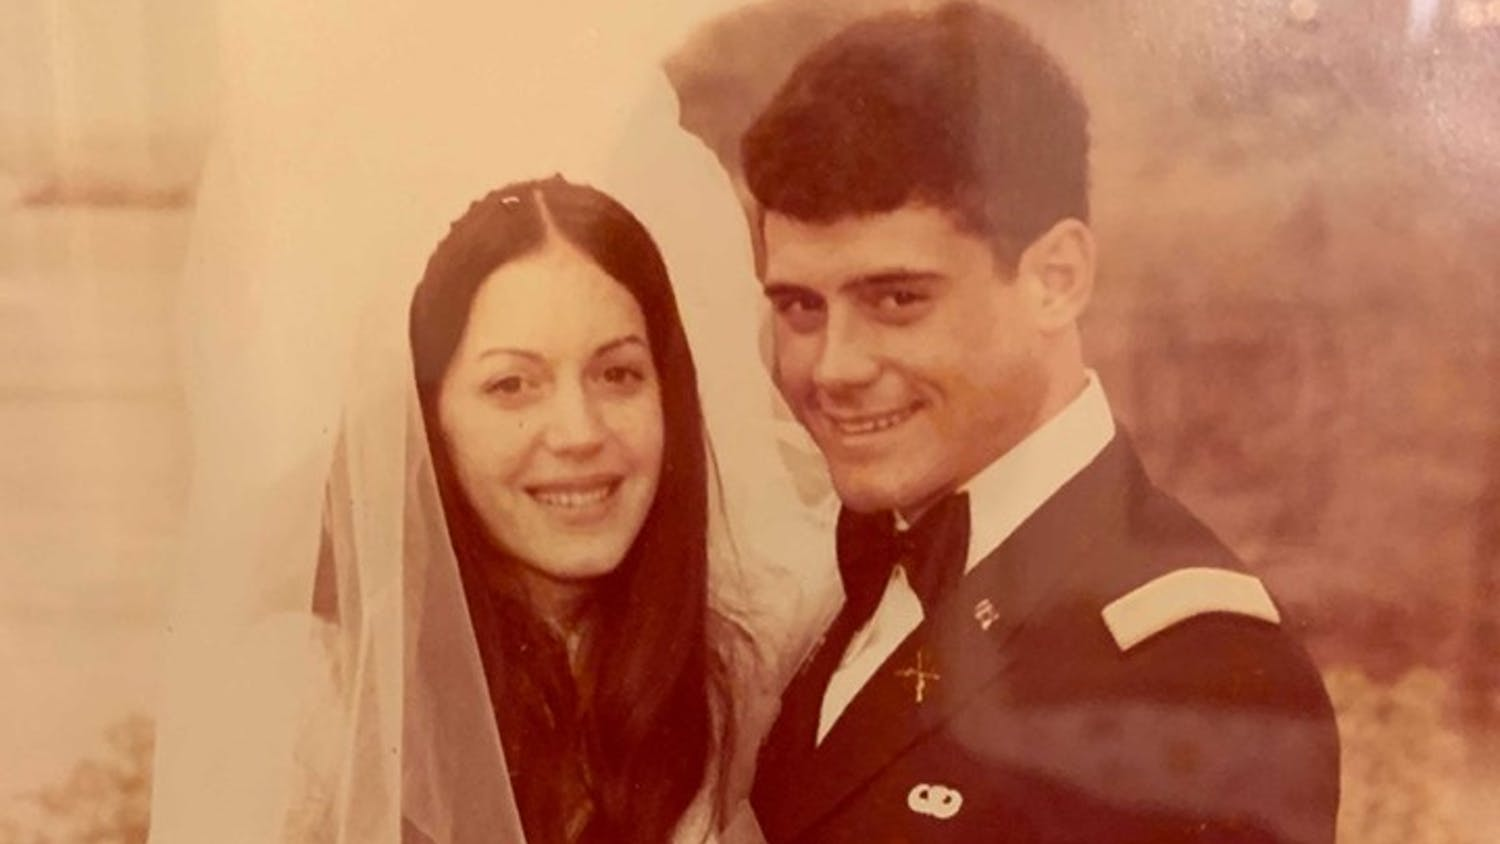 University of South Carolina President Bob Caslen and First Lady Shelly Caslen pose on their wedding day. They married on April 16, 1977.